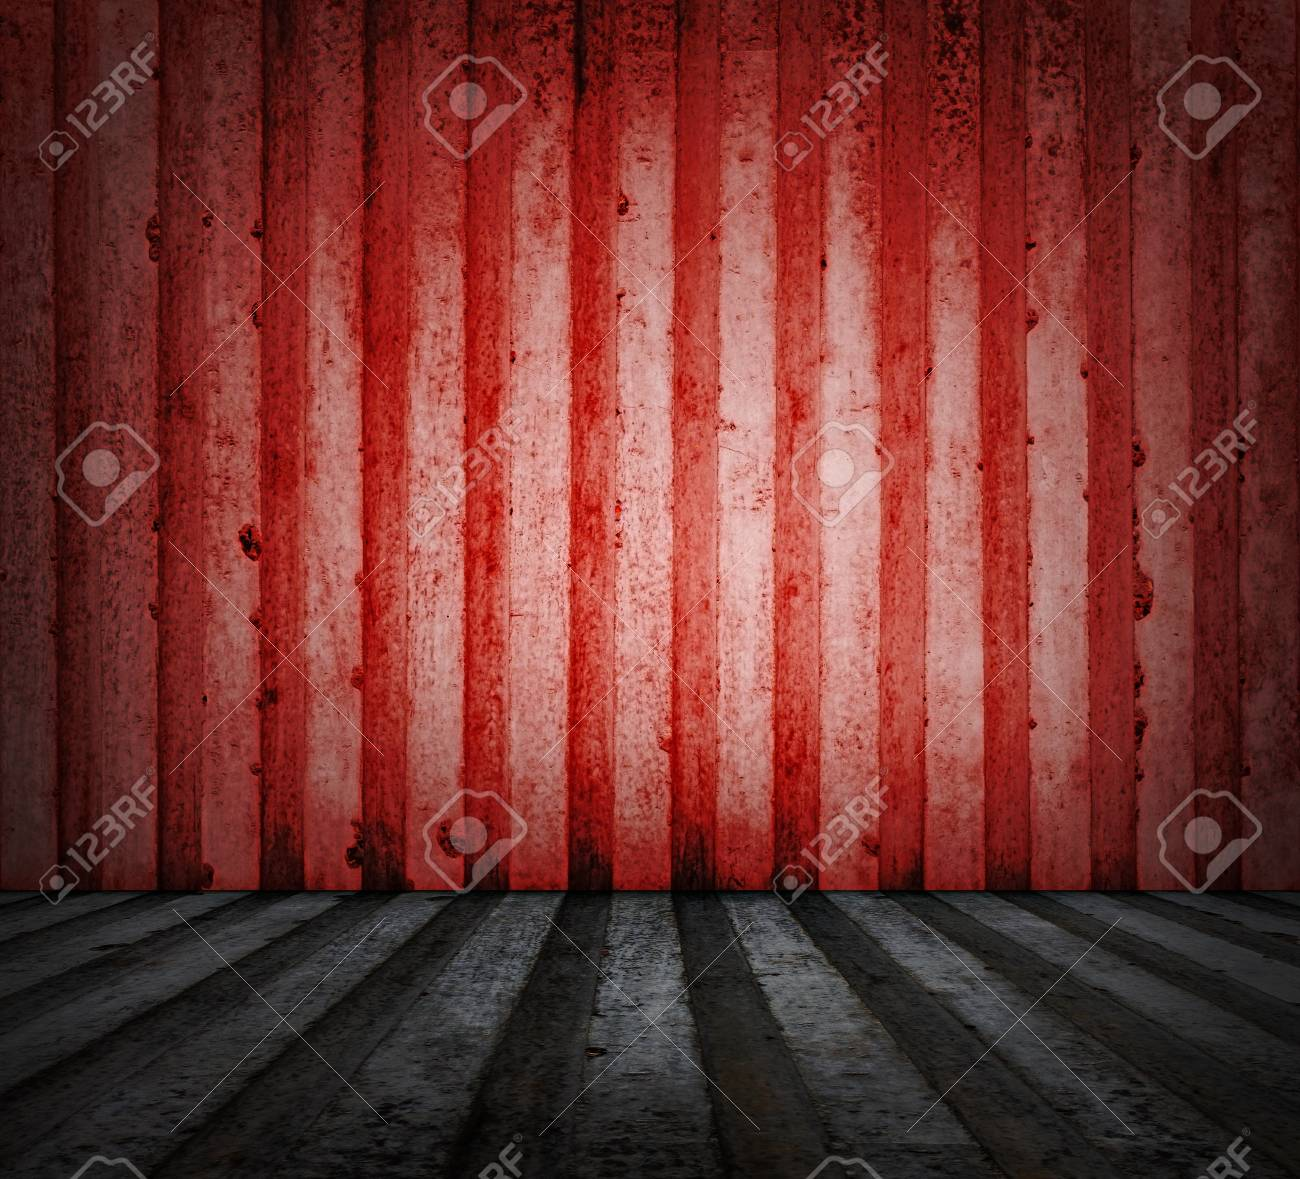 old red room with concrete walld Stock Photo - 18557314